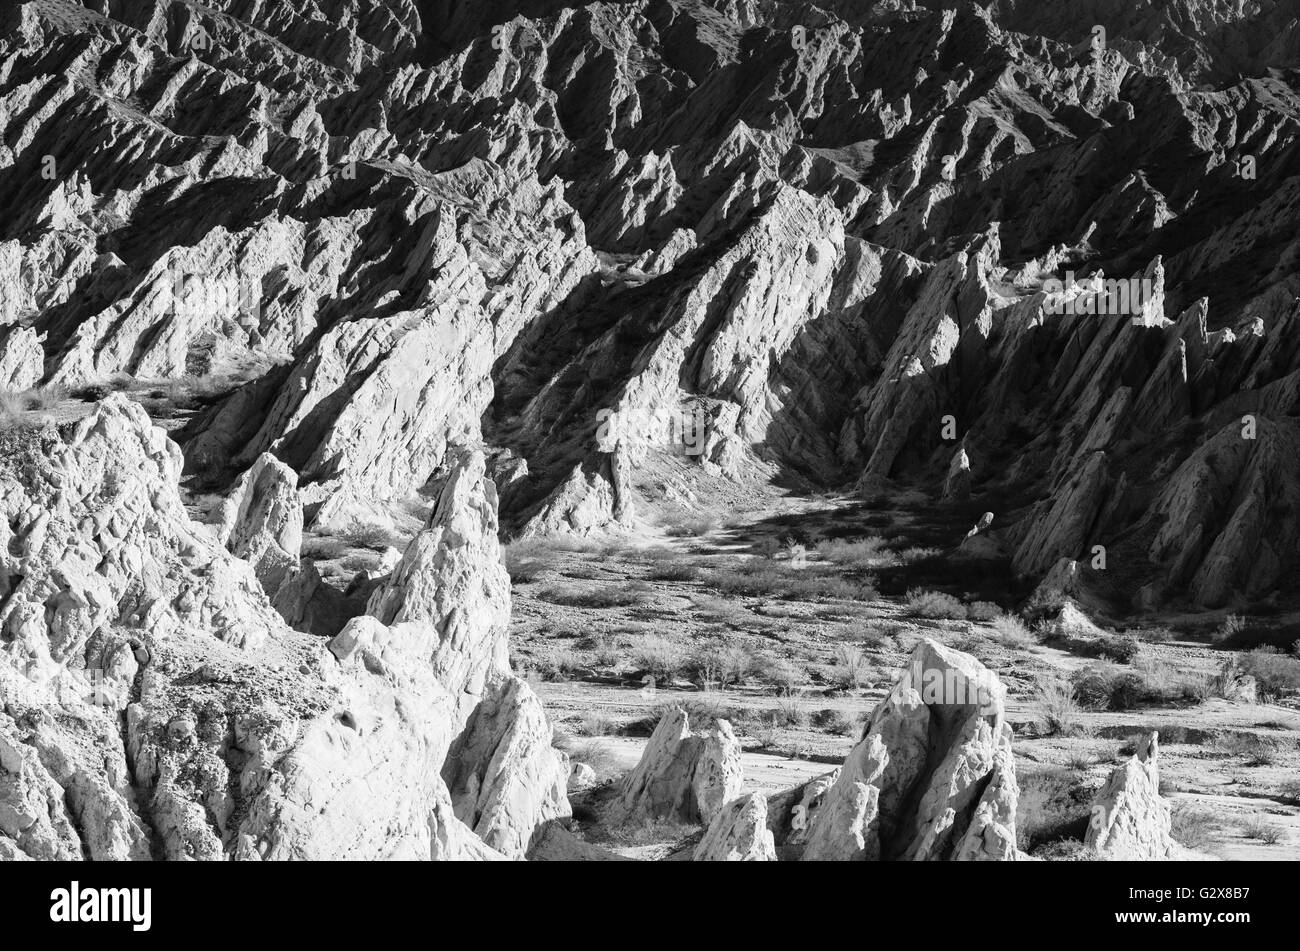 Extreme rock formations in the Argentinian Andes - Stock Image